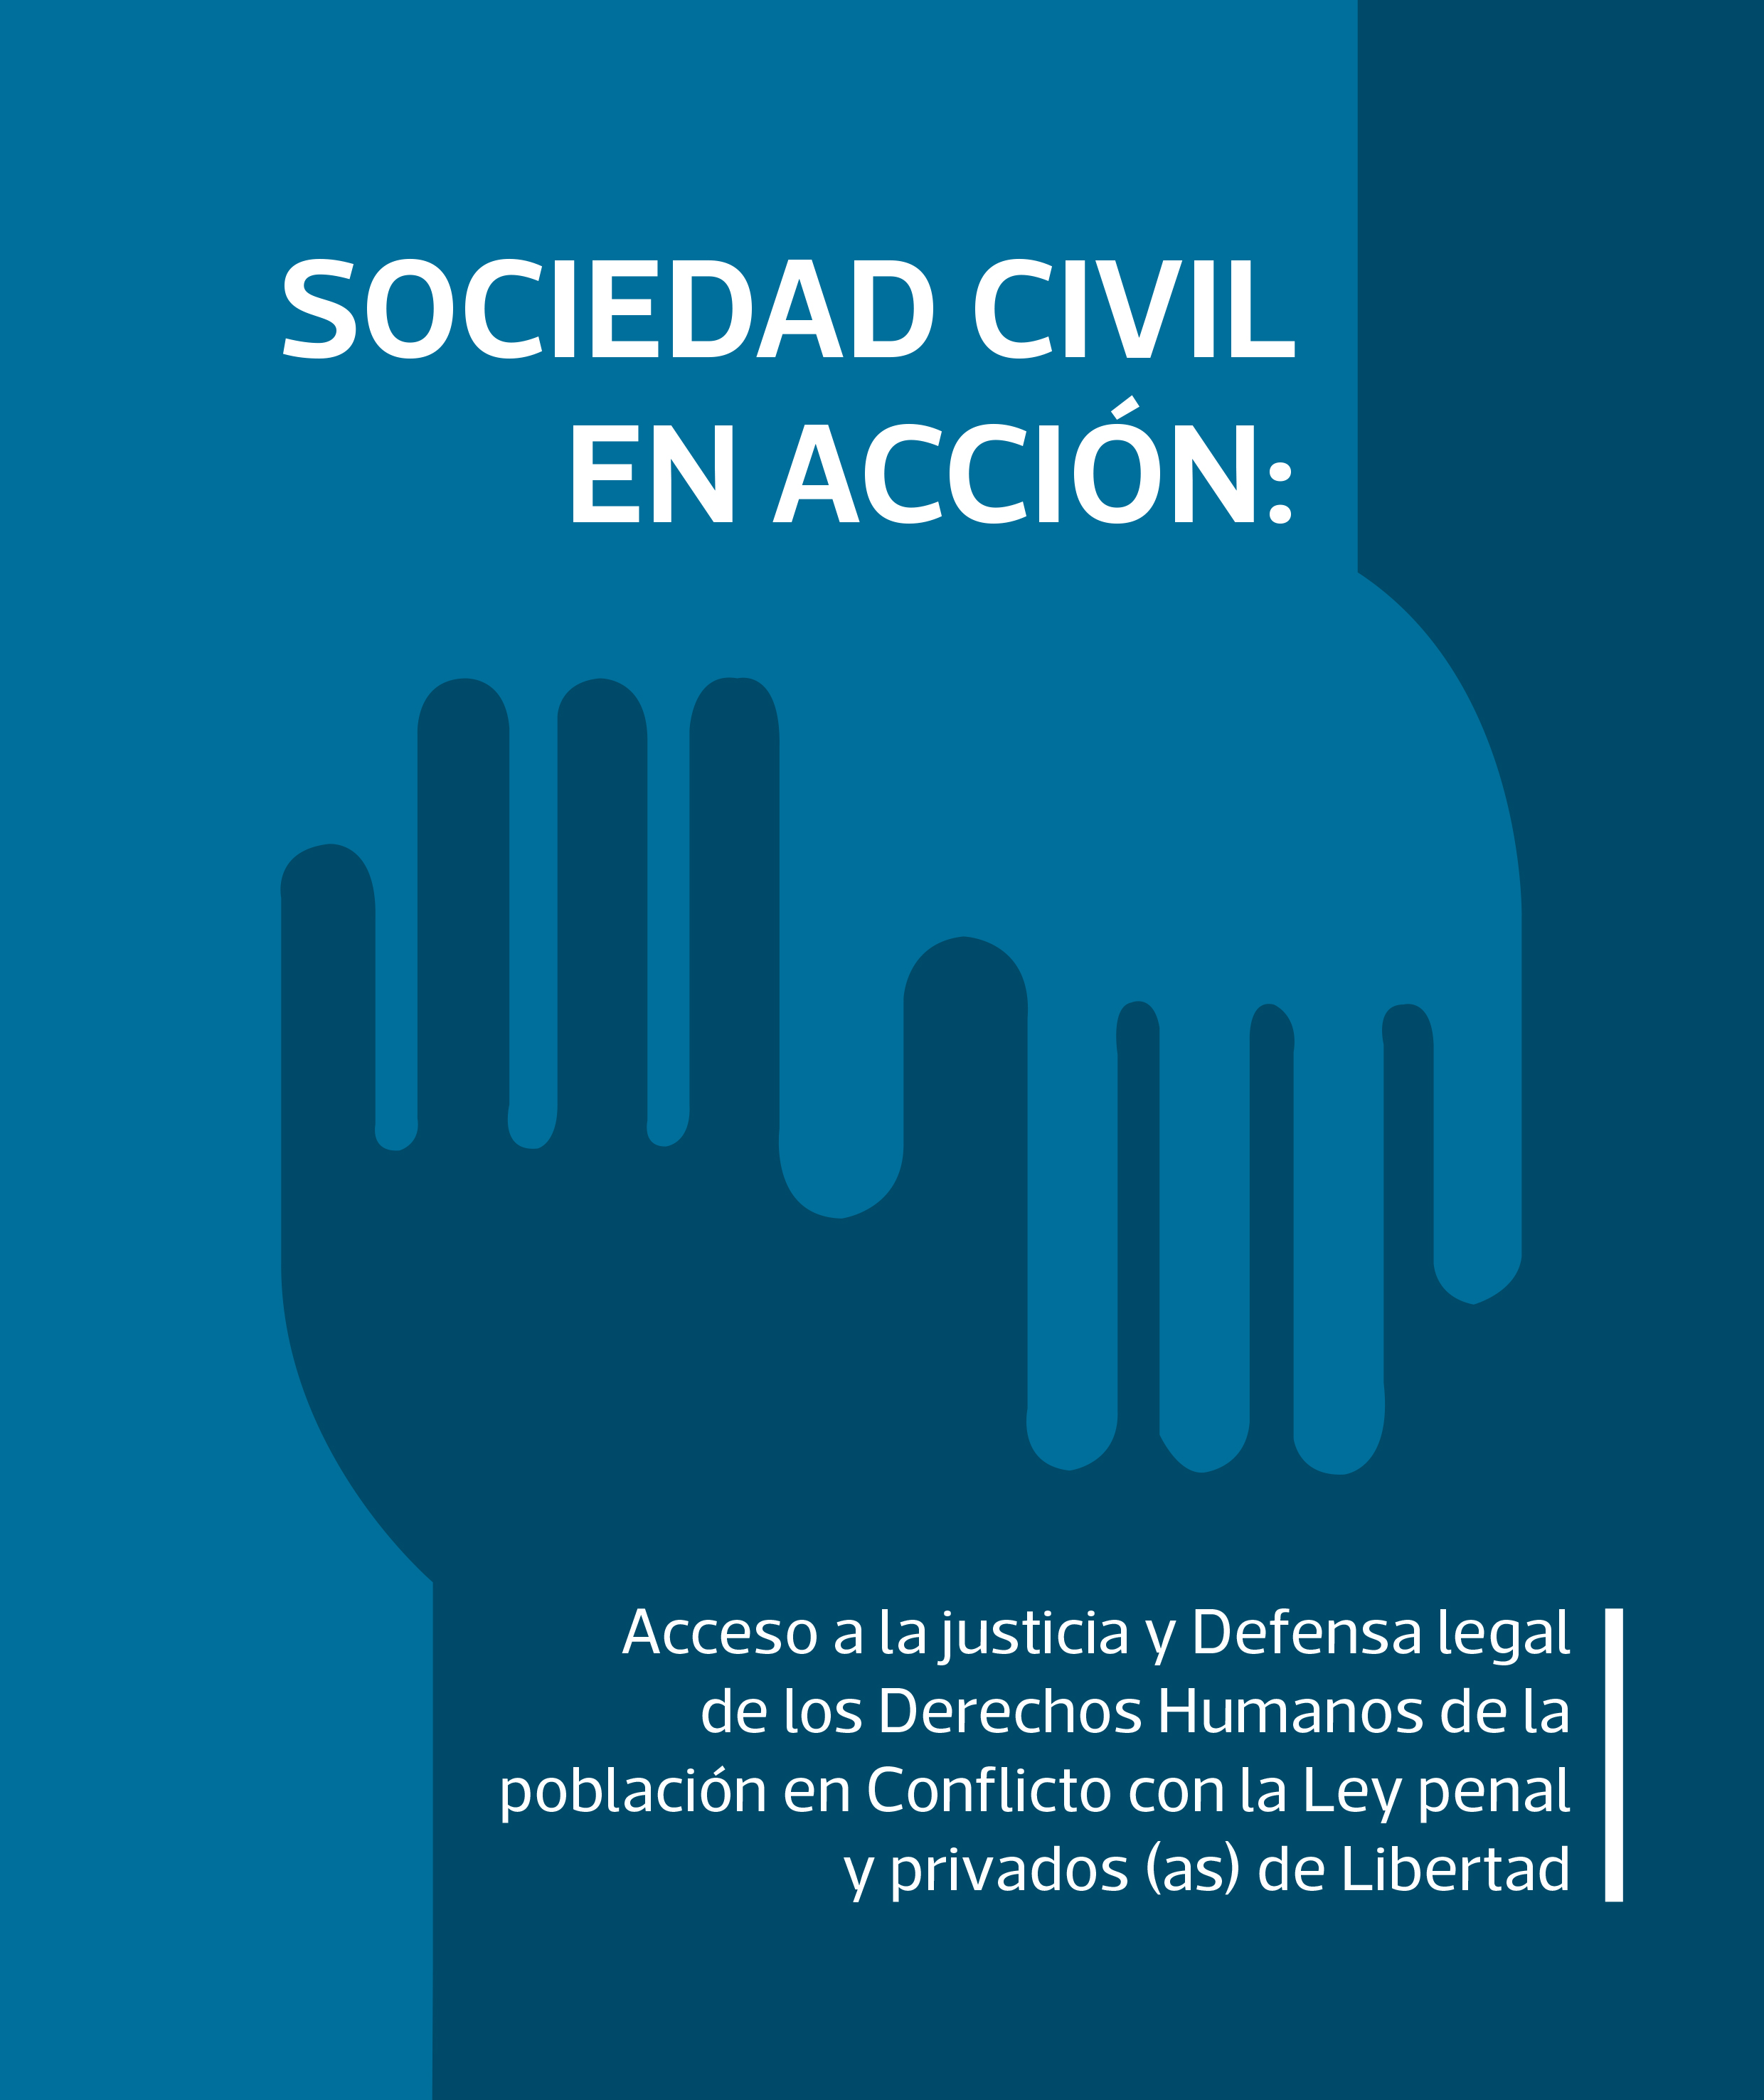 SOCIEDAD CIVIL MEMORIA FINAL-1